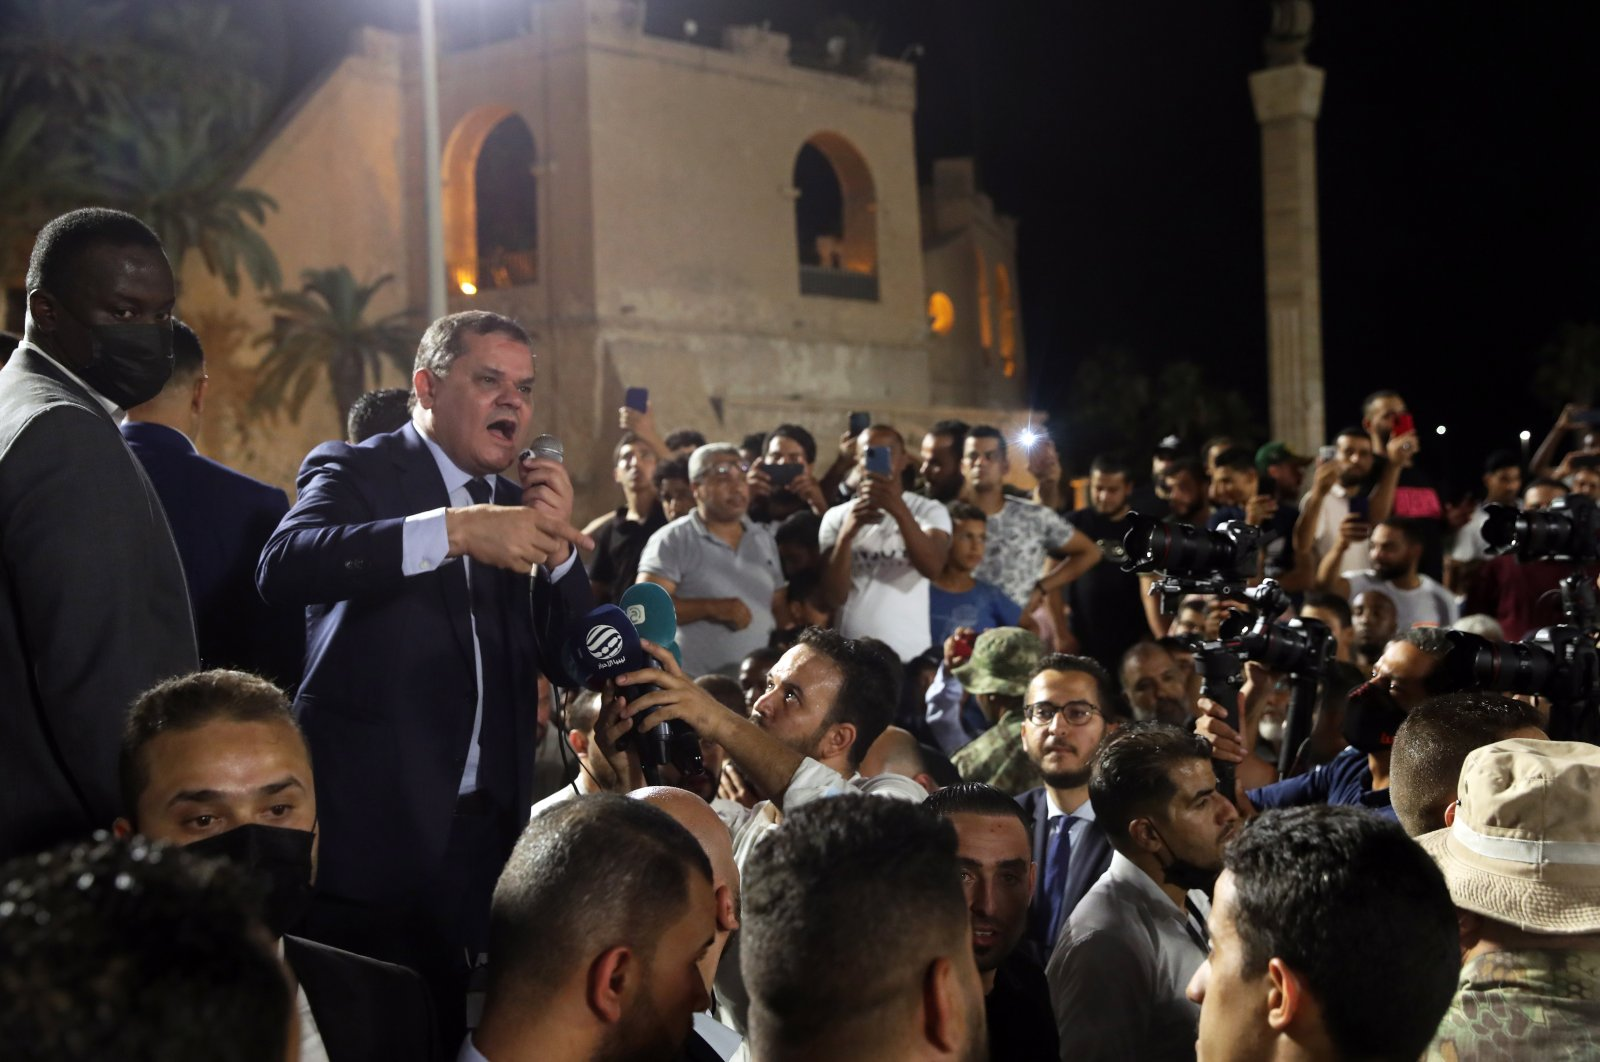 Libyan Prime Minister Abdul Hamid Mohammed Dbeibah (C) addresses a crowd of his supporters in Martyrs Square in Tripoli, Libya, Sept. 21, 2021. (EPA Photo)